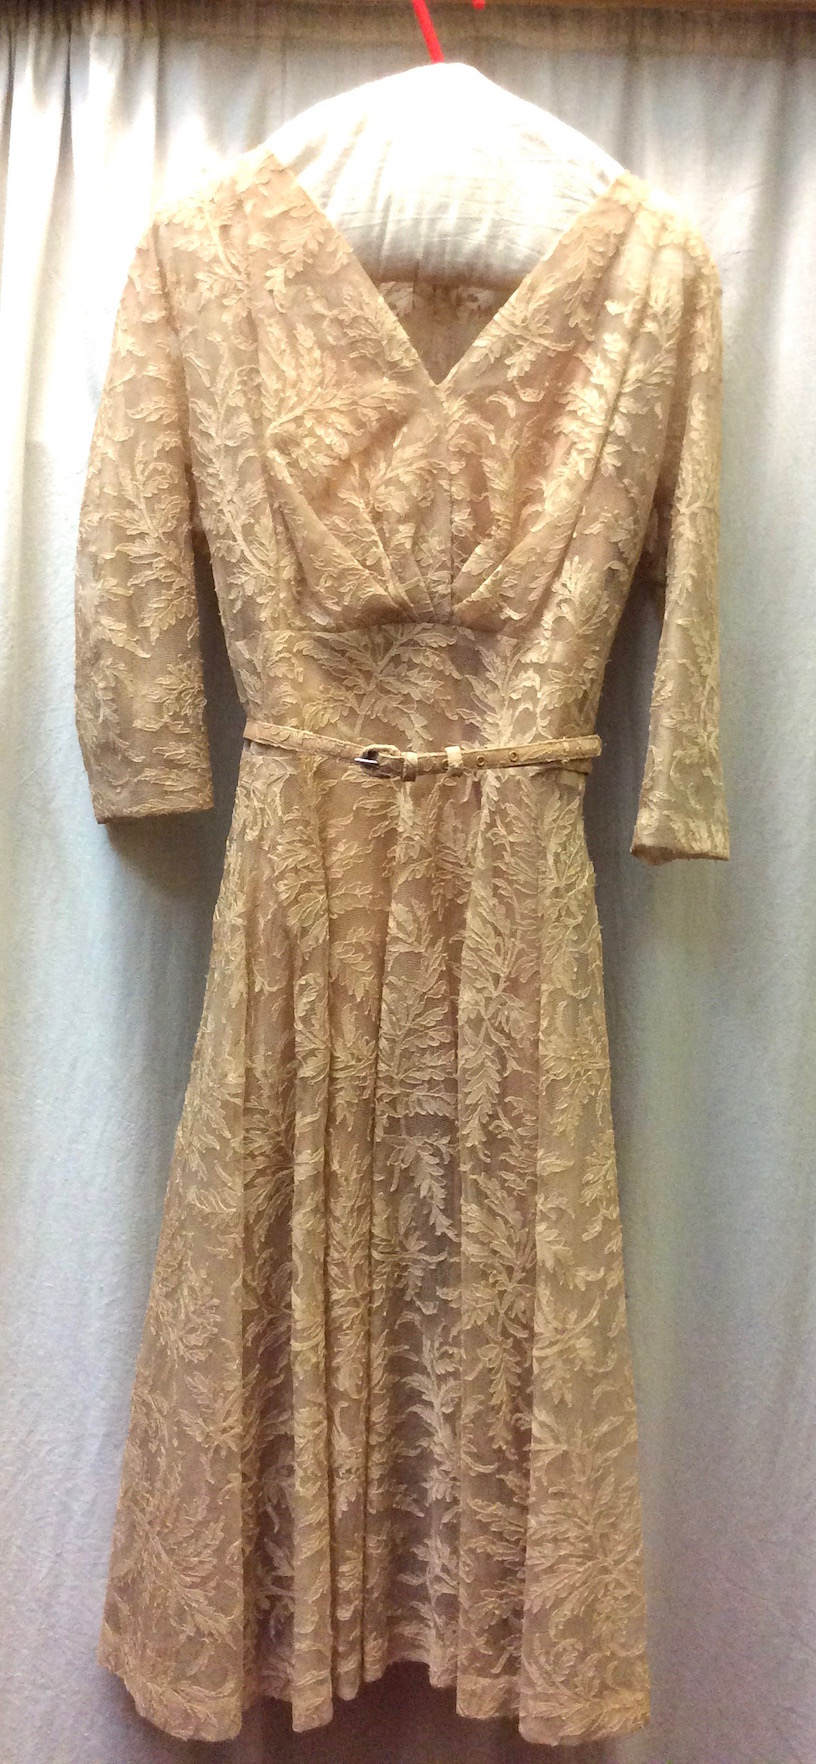 Misses Mooney dress 1950's front